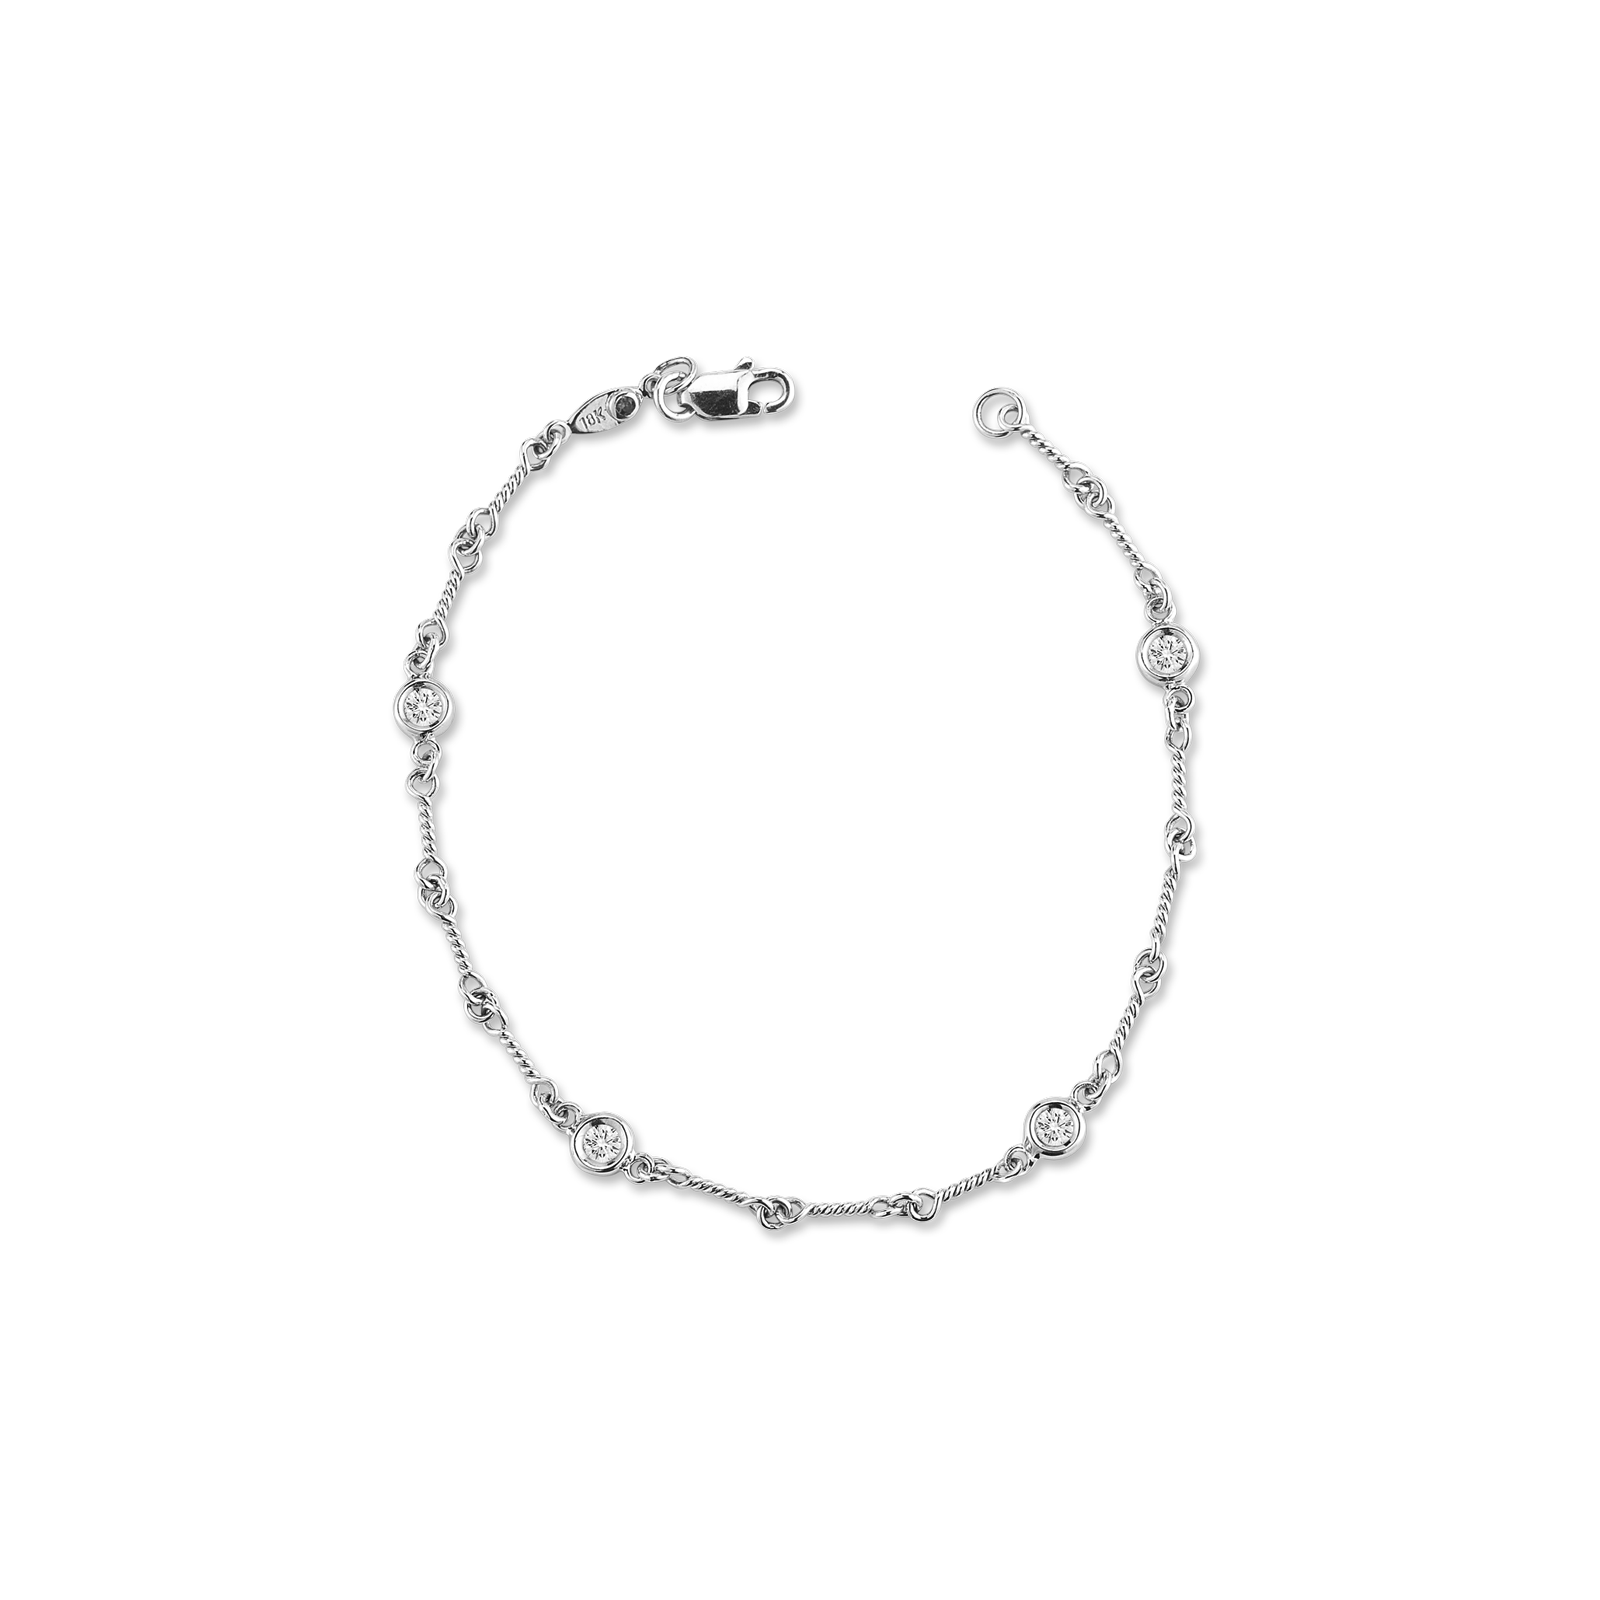 18KT GOLD 4 STATION DIAMOND DOG BONE BRACELET